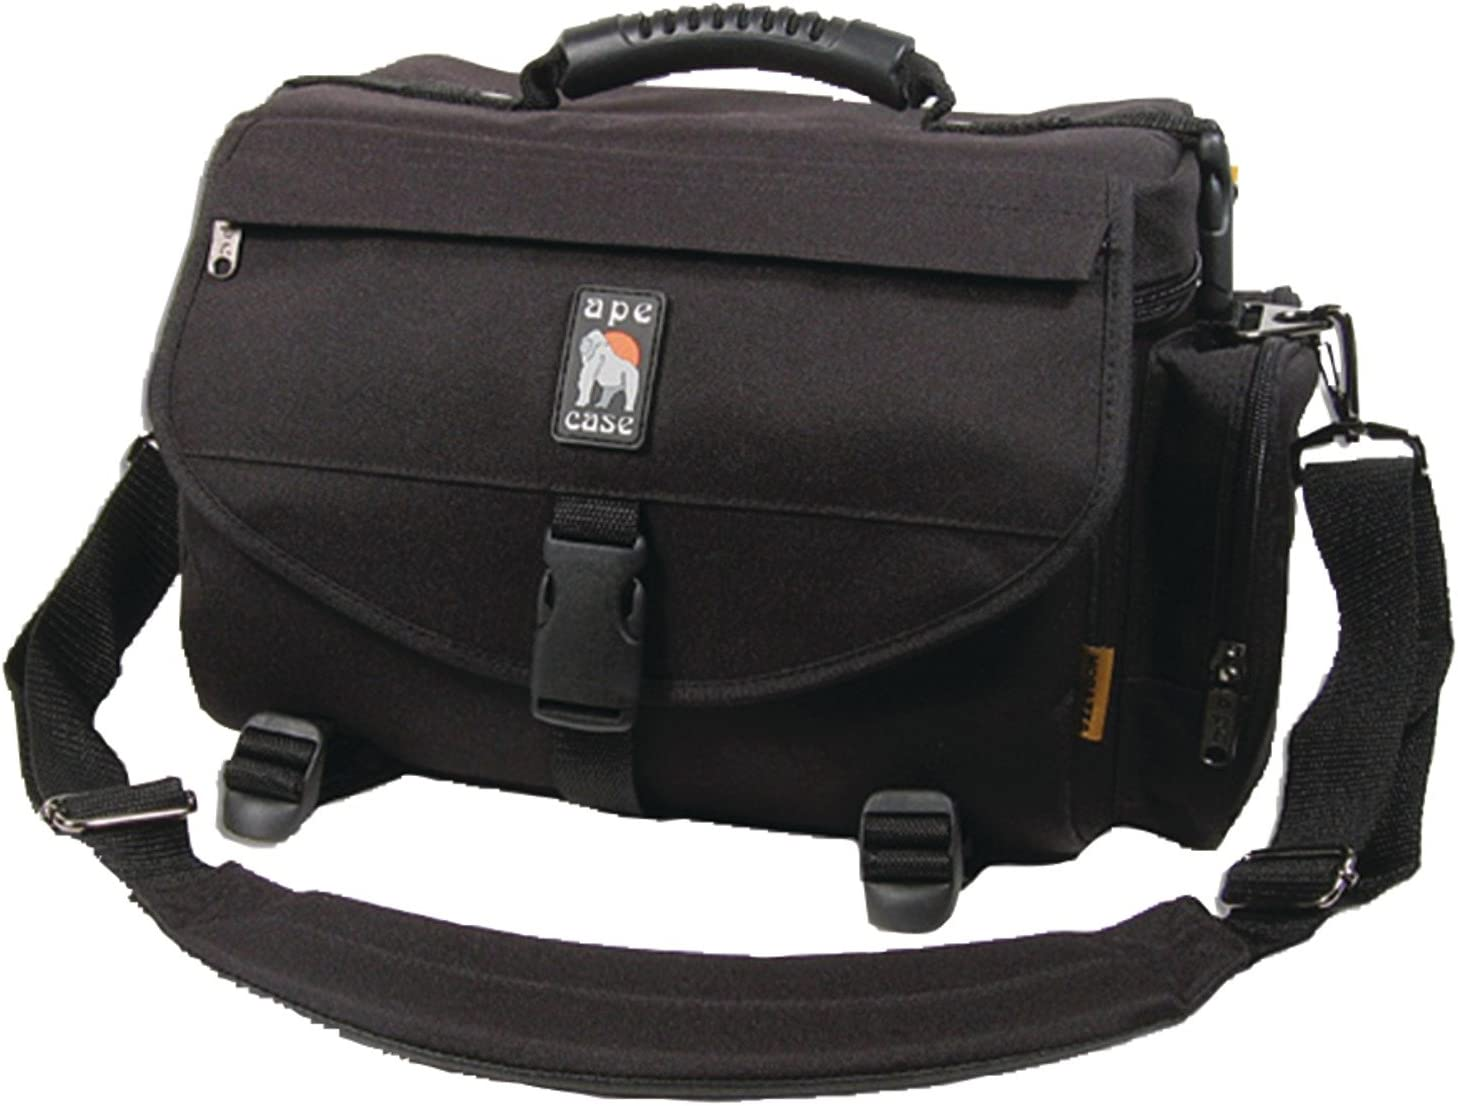 ACPRO1000 Ape Case Pro Small Digital SLR and Video Camera Case